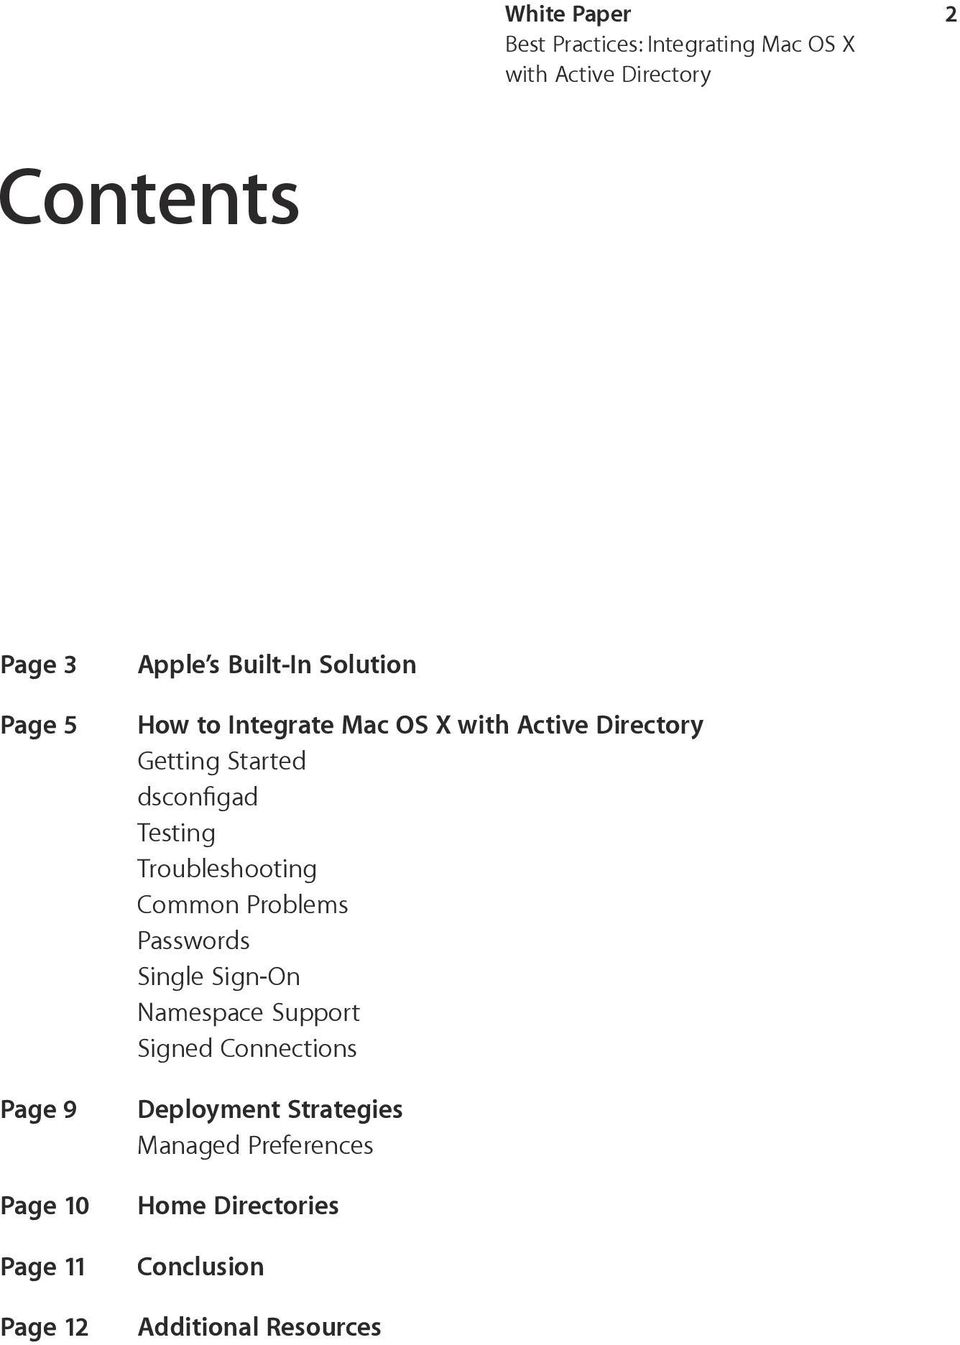 Best Practices: Integrating Mac OS X with Active Directory